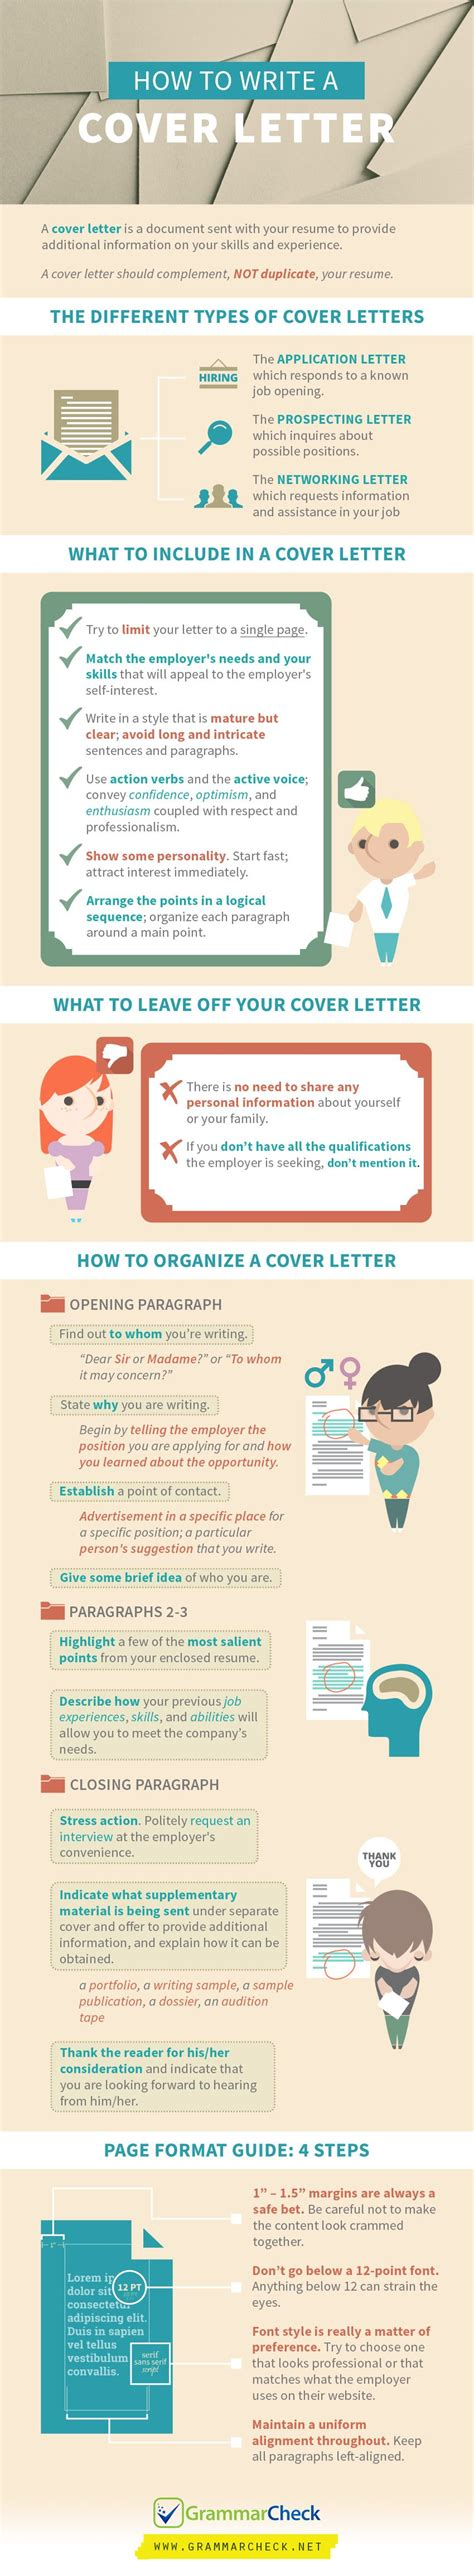 how to write a cover letter step by step how to write a cover letter step by step